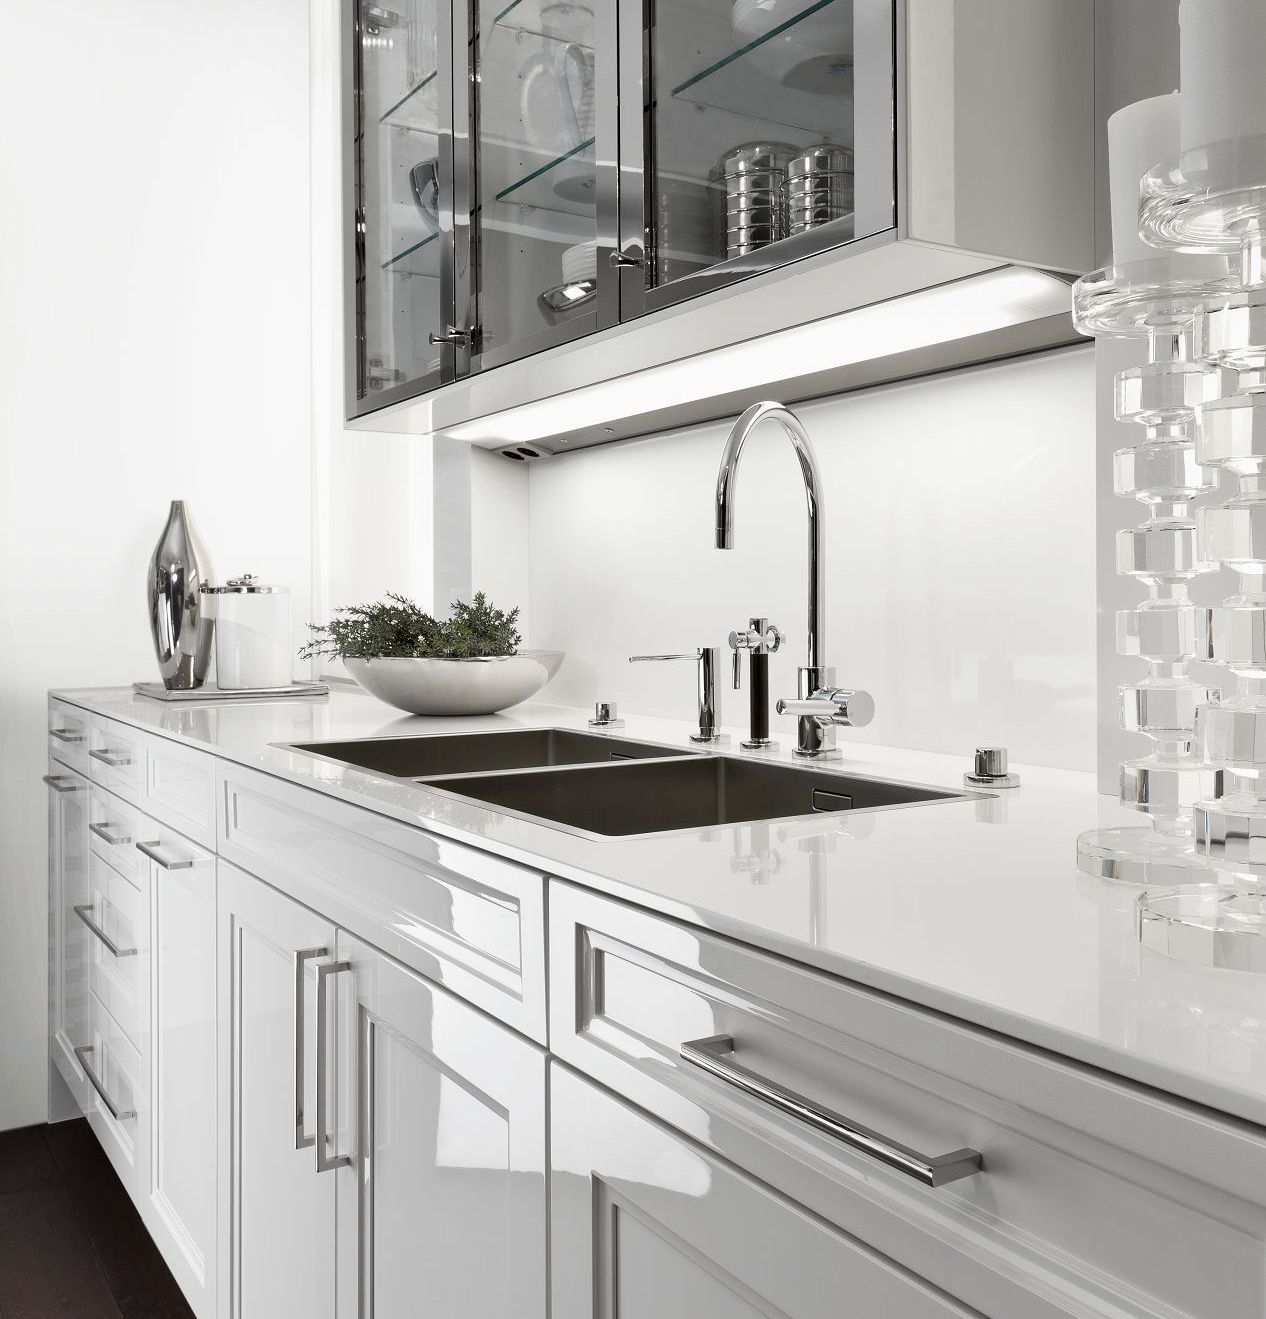 SieMatic Classic BeauxArts S2 base cabinets in white and wall cabinets in nickel gloss finish